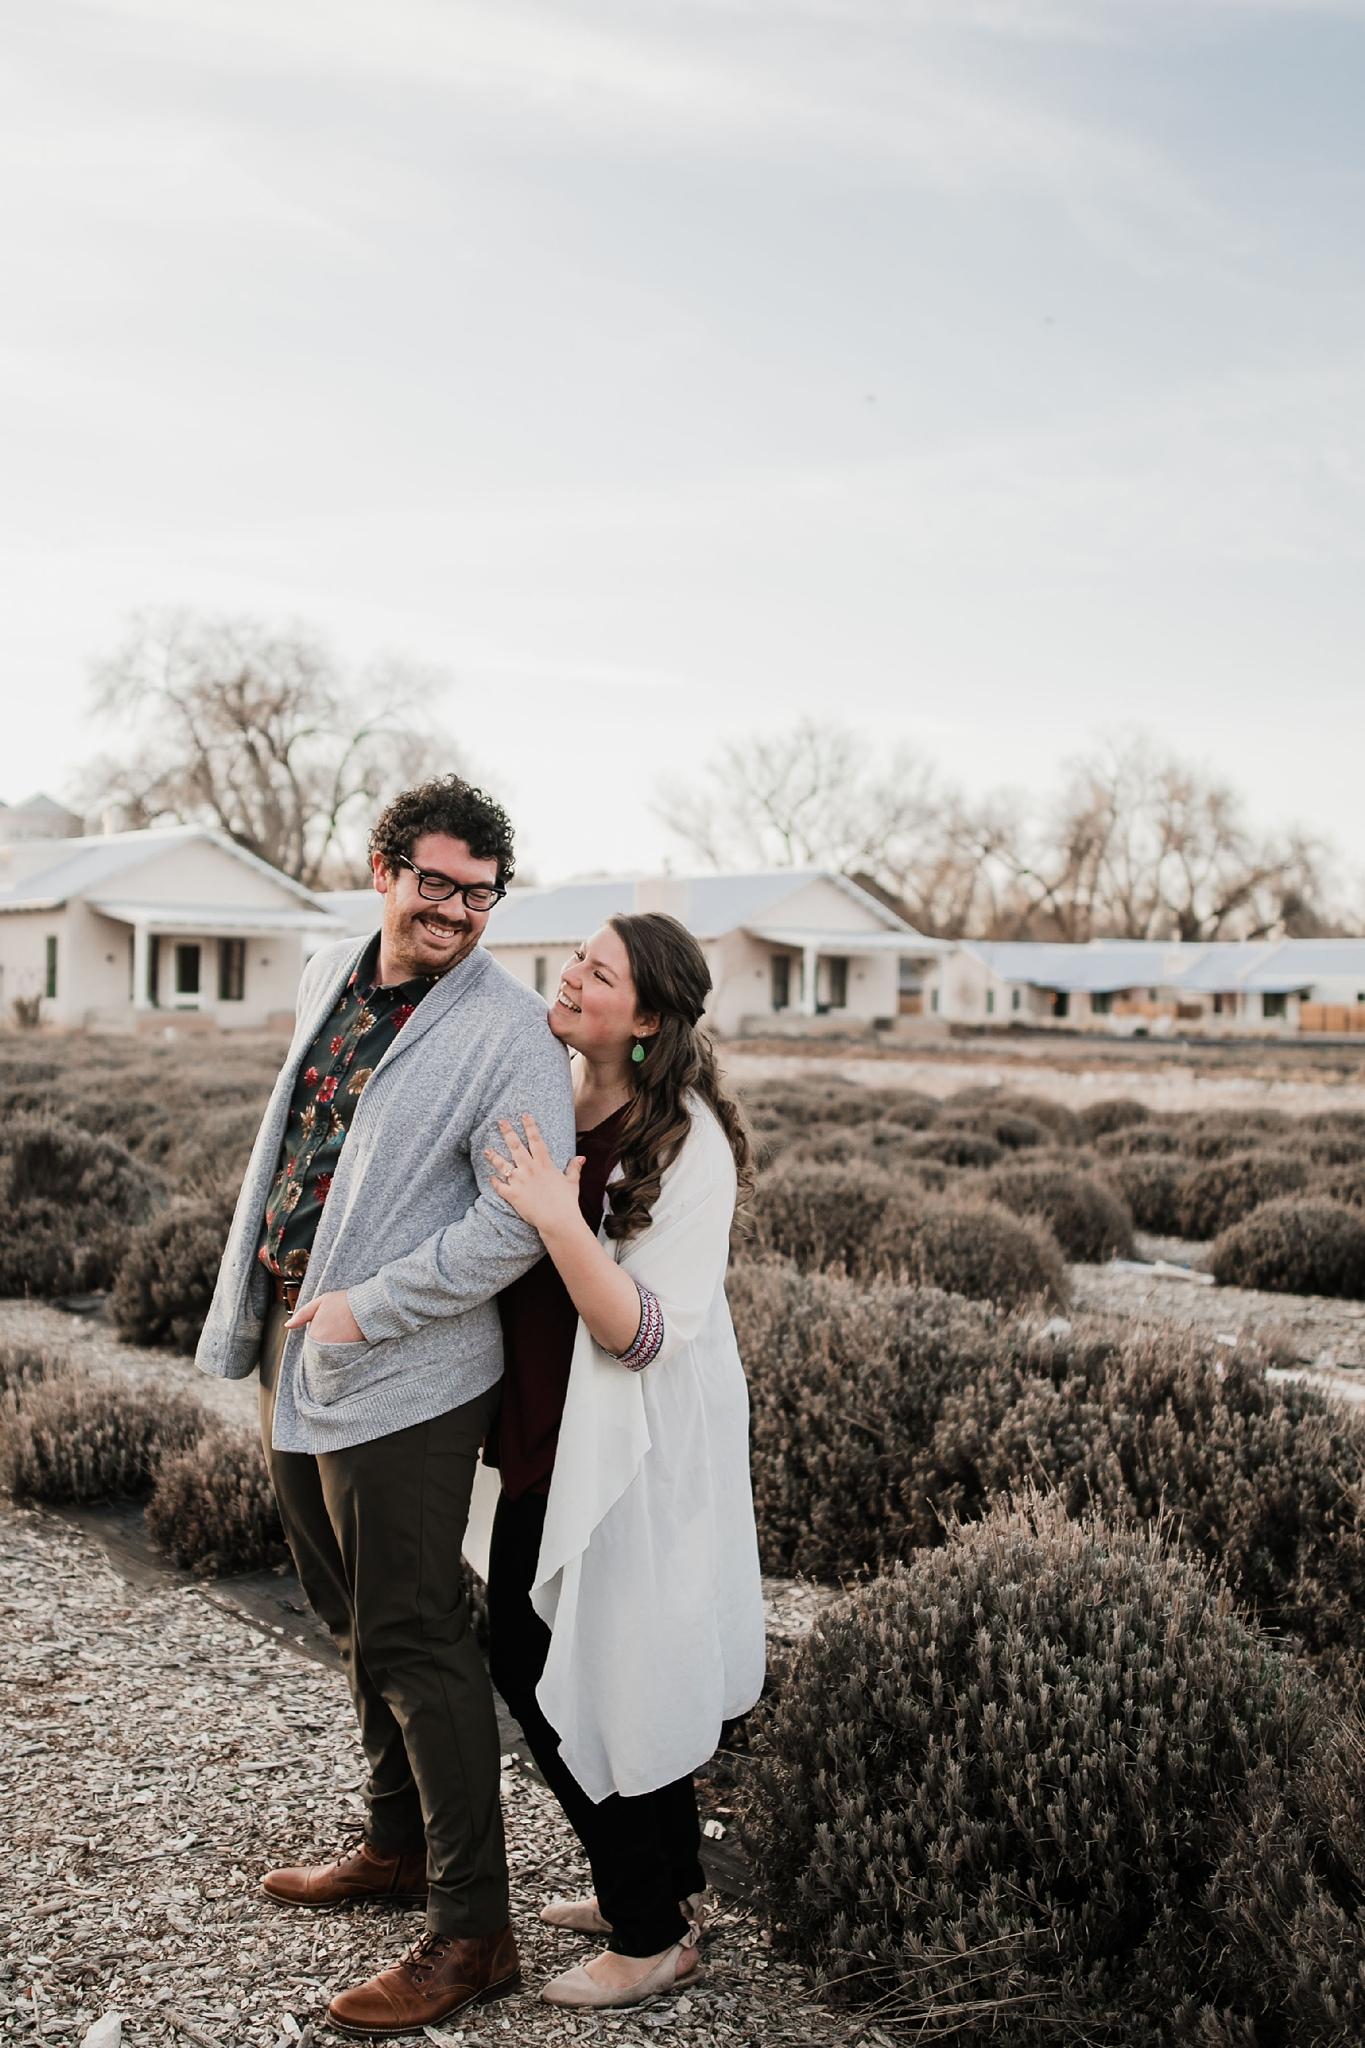 Alicia+lucia+photography+-+albuquerque+wedding+photographer+-+santa+fe+wedding+photography+-+new+mexico+wedding+photographer+-+new+mexico+engagement+-+los+poblanos+engagement+-+spring+engagement_0008.jpg